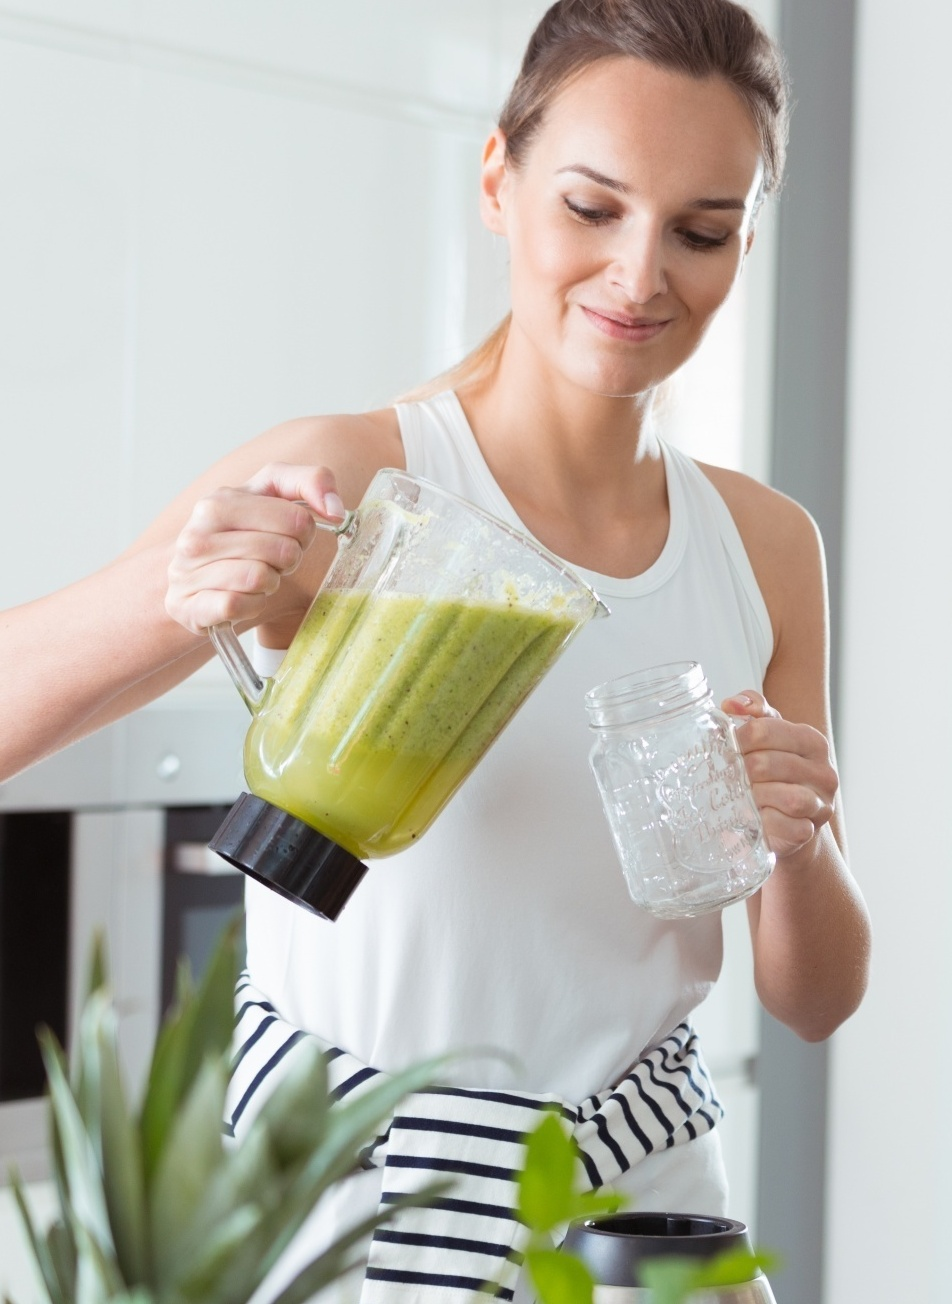 get rid of mummy tummy for good, Pony-tailed woman in white tank pouring green smoothie from blender into ball glass